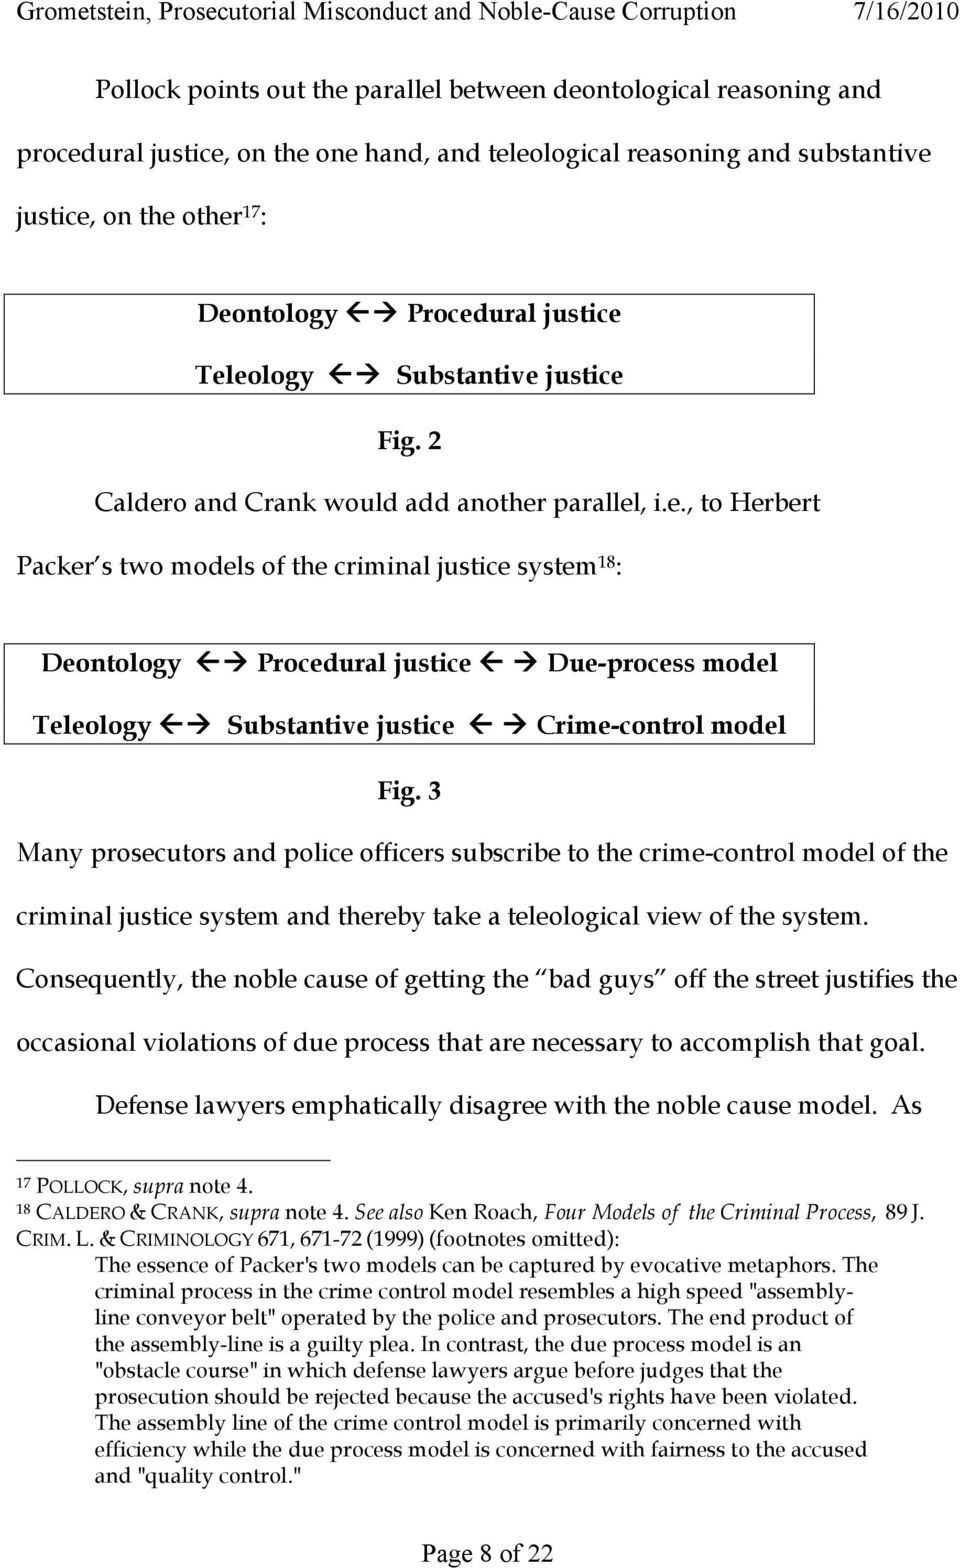 3 Many prosecutors and police officers subscribe to the crime-control model of the criminal justice system and thereby take a teleological view of the system.